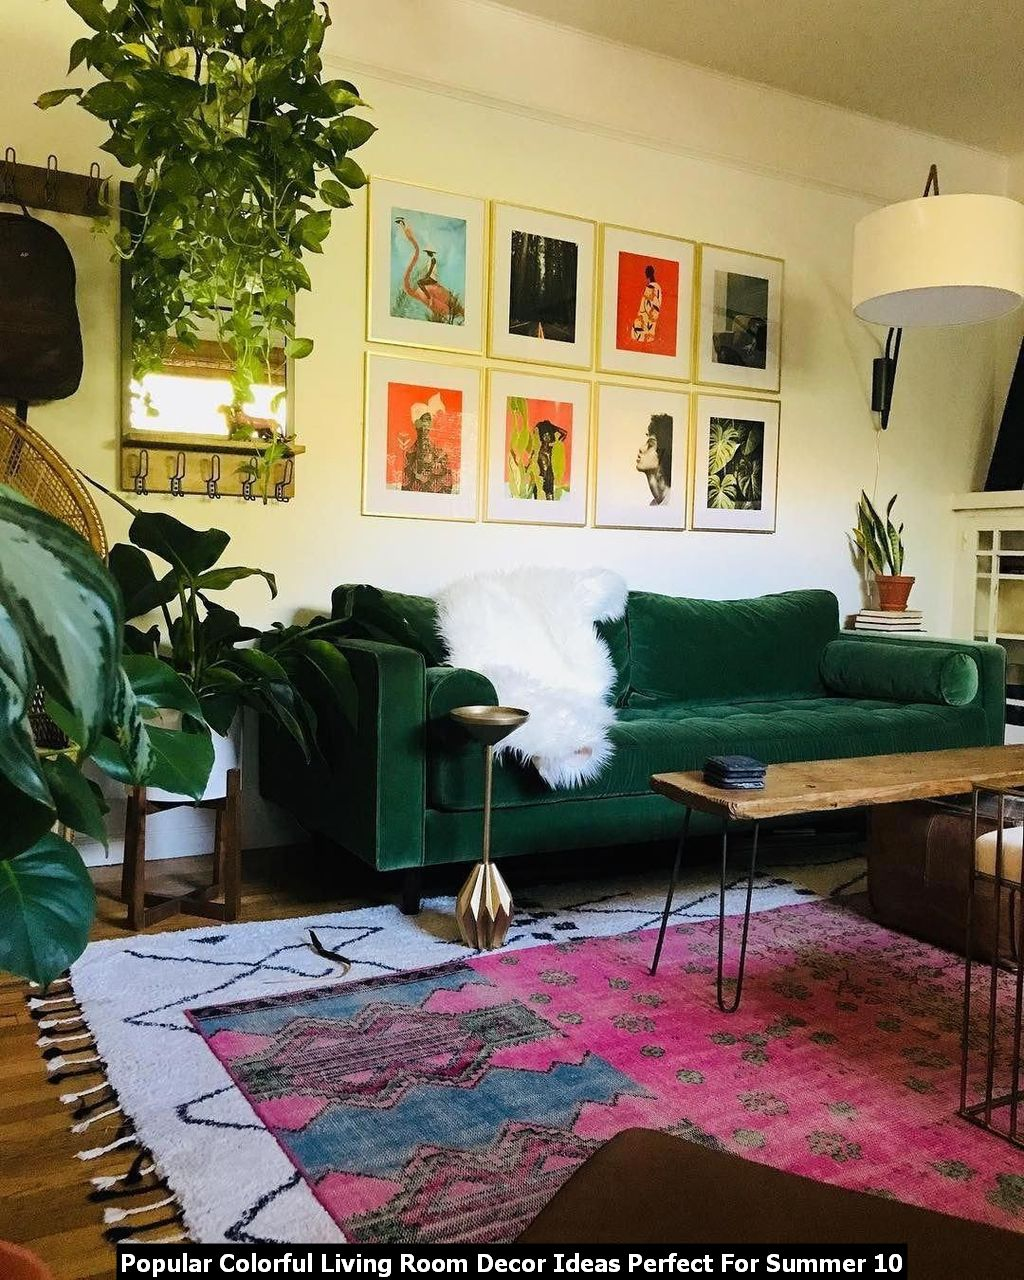 Popular Colorful Living Room Decor Ideas Perfect For Summer 10